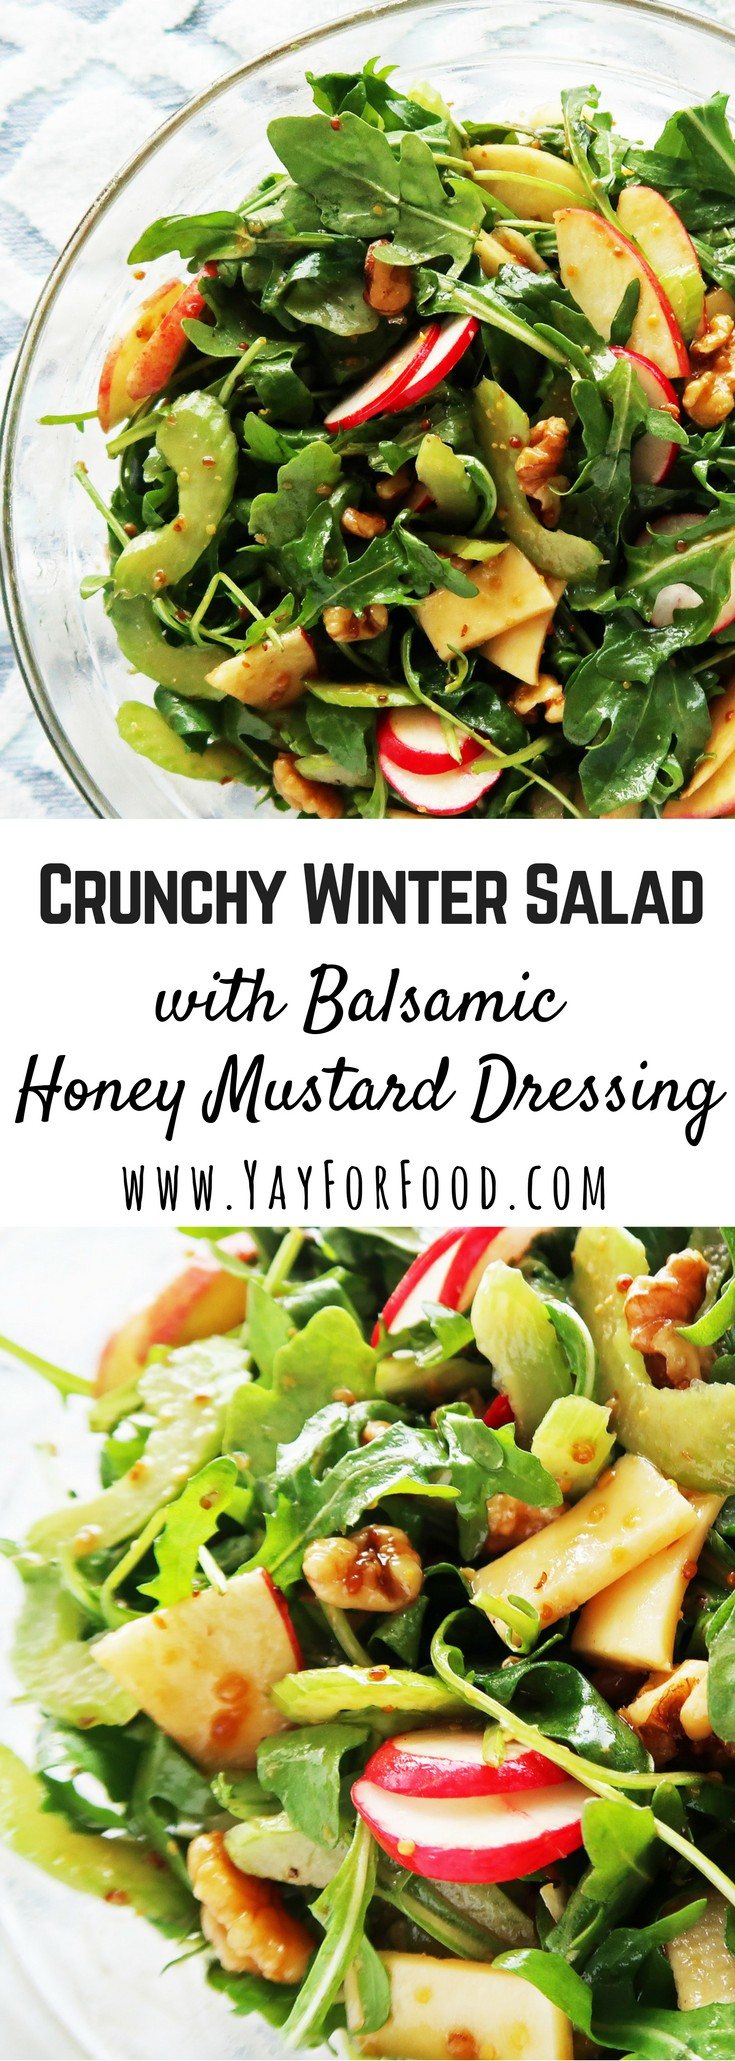 This healthy, delicious crunchy winter salad is paired with a homemade balsamic-honey mustard dressing. Easy to prepare and ready in 10 minutes or less!